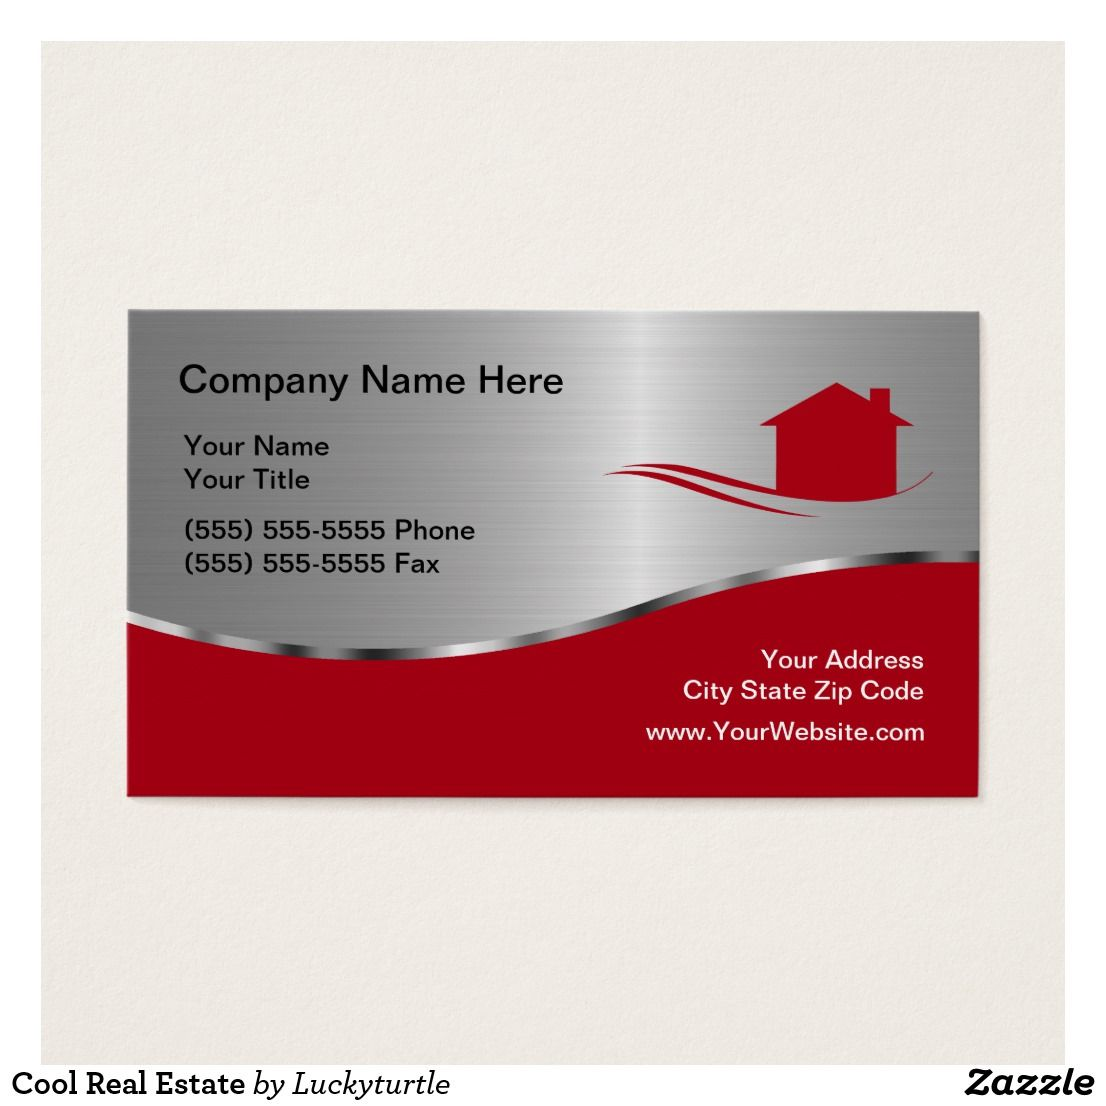 Cool Real Estate Business Card | Real estate business